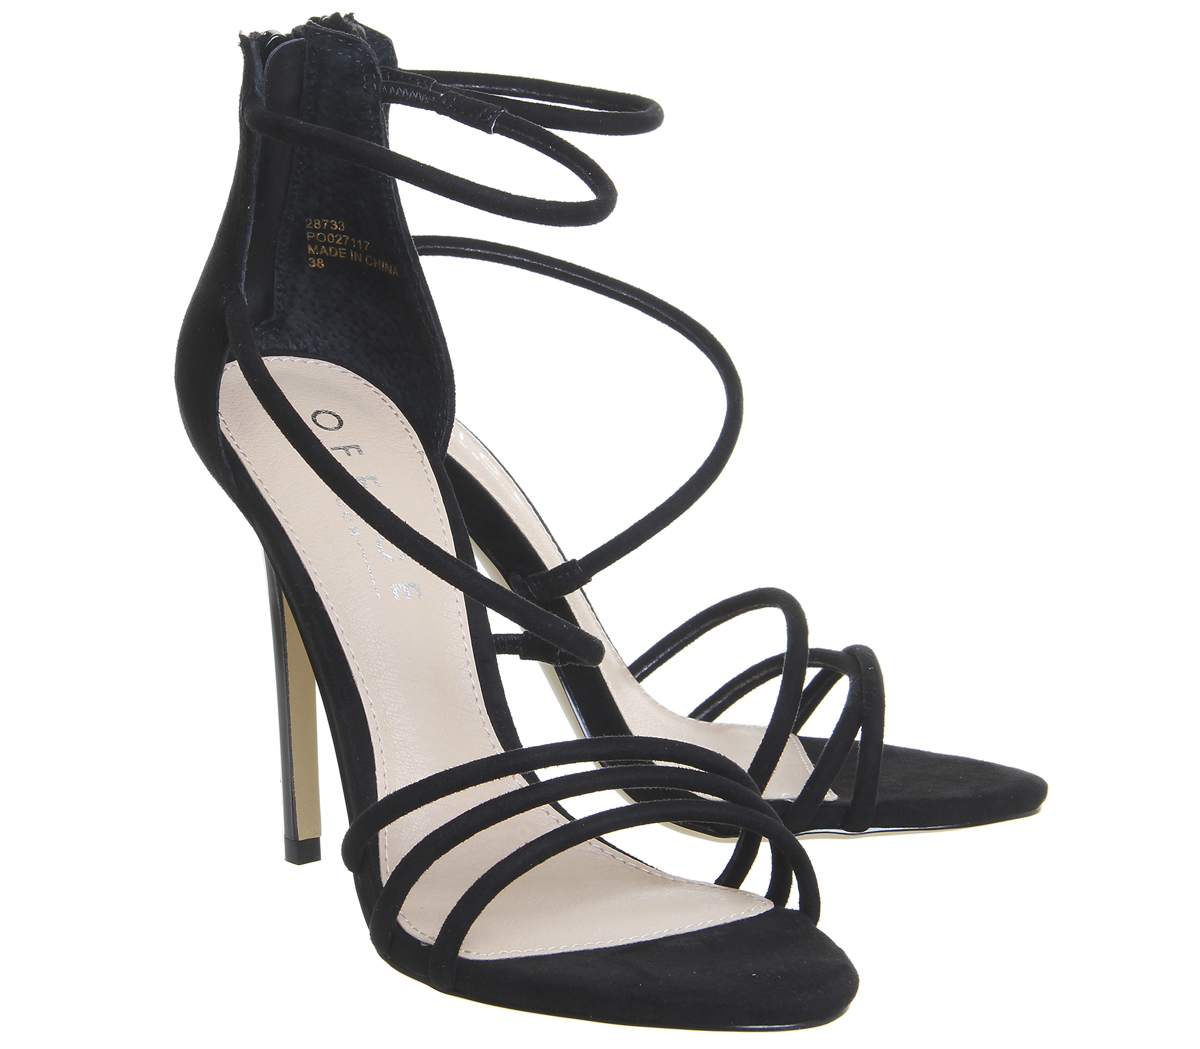 7675e601bef Womens-Office-Harness-Strappy-Sandals-Black-Heels thumbnail 6